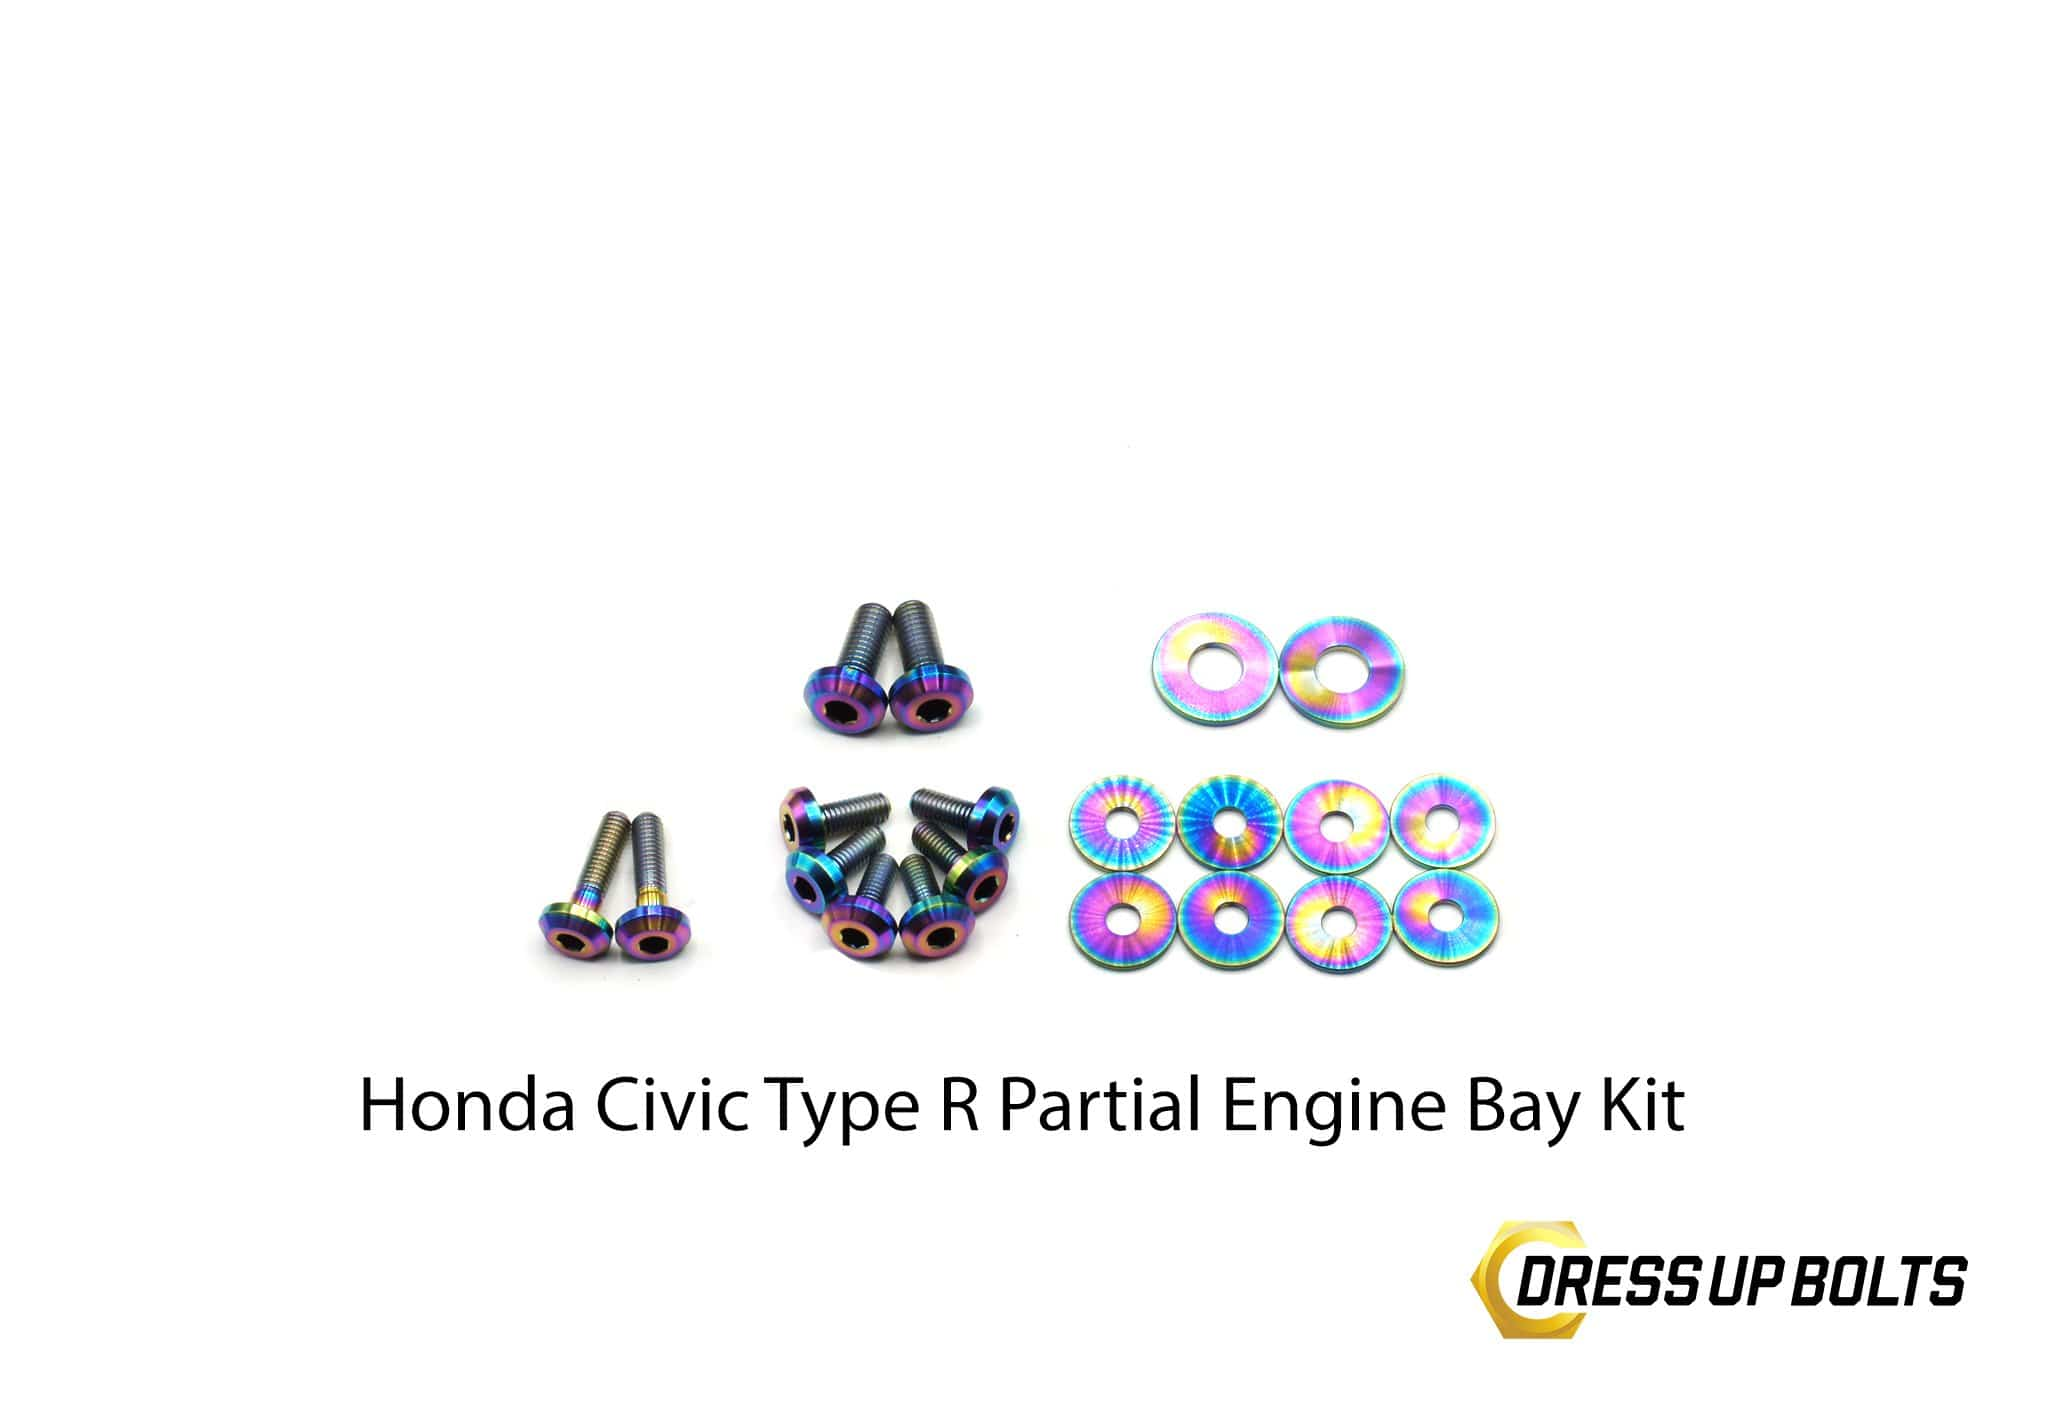 Honda Civic Type R (2017-2019) Titanium Dress Up Bolt Partial Engine Bay Kit - DressUpBolts.com